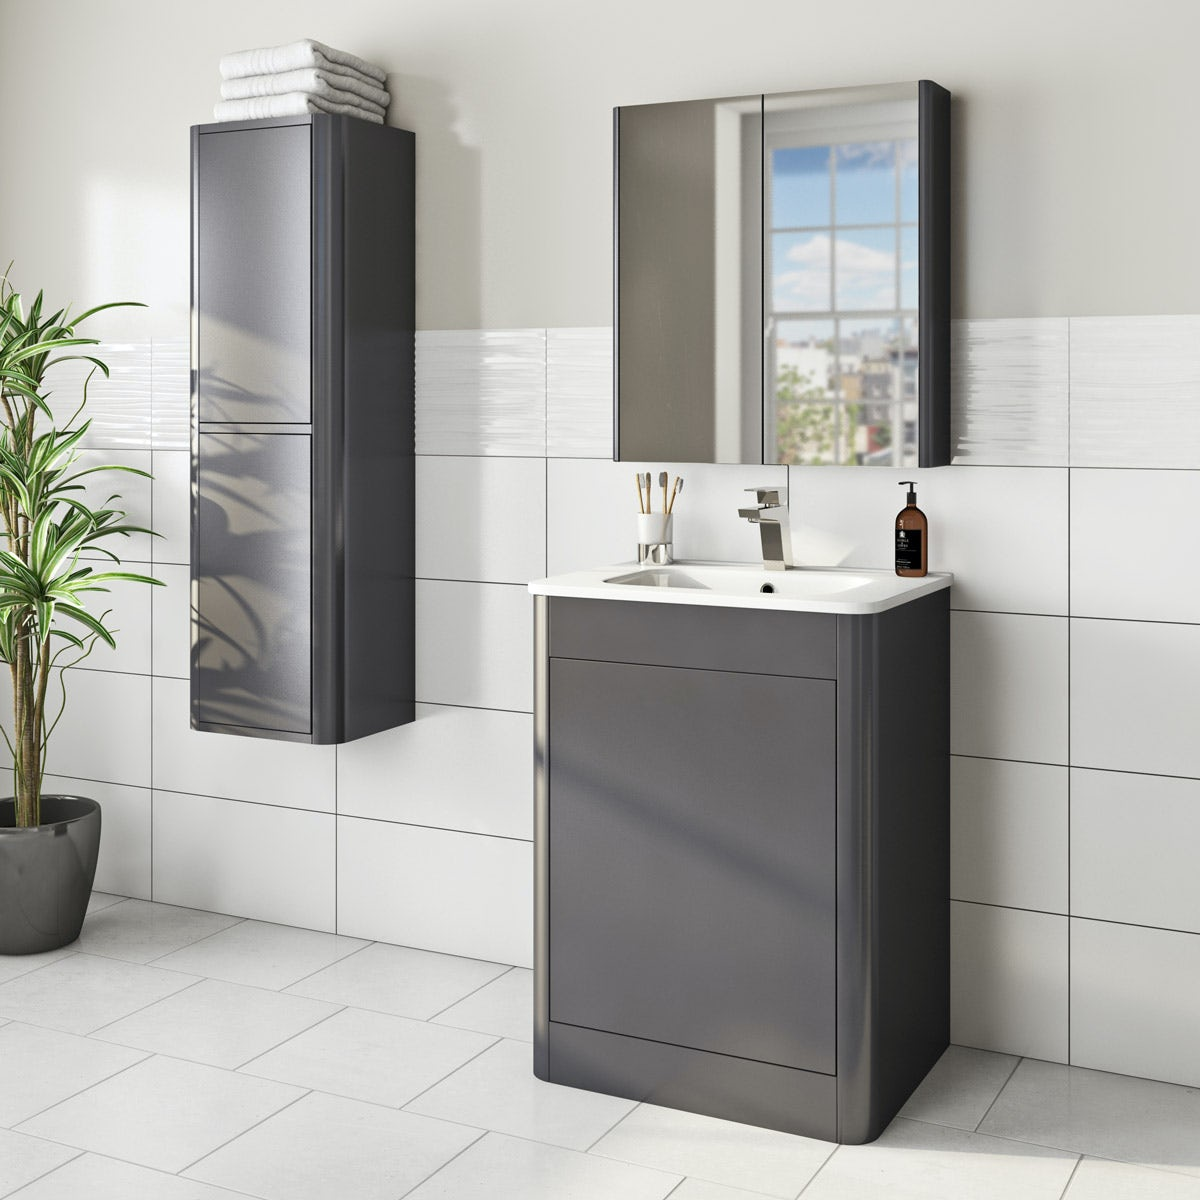 Mode carter slate furniture package with vanity unit 600mm